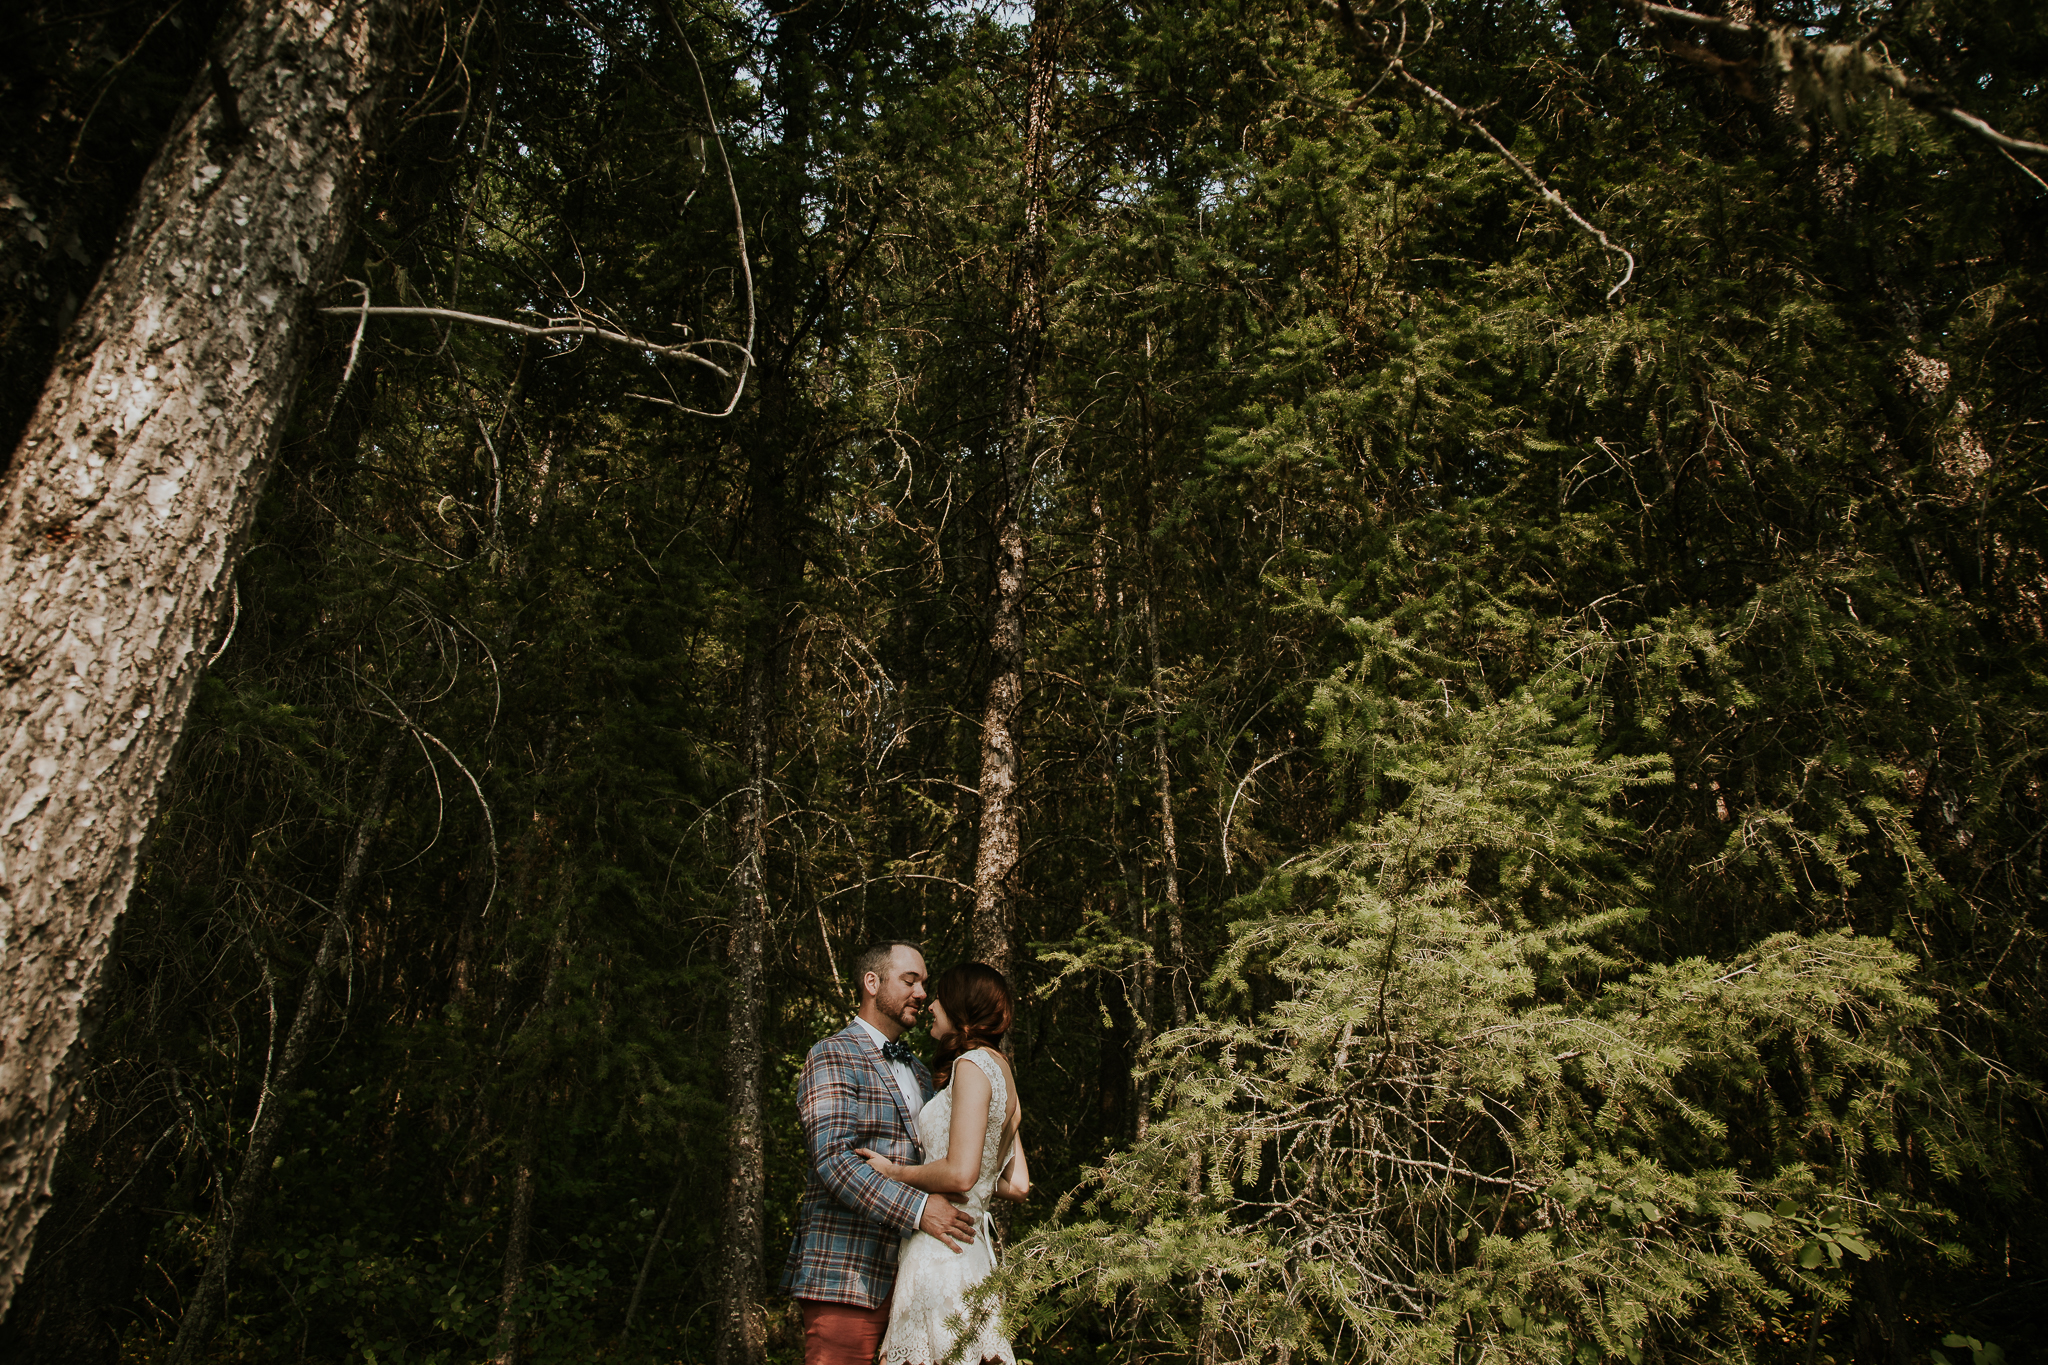 20170805-adventureelopementphotographercanada-canadaadventureelopement-adventureweddingphotographer-cedarlakewedding-goldenweddingphotographer-Rob and Dee-4433.jpg